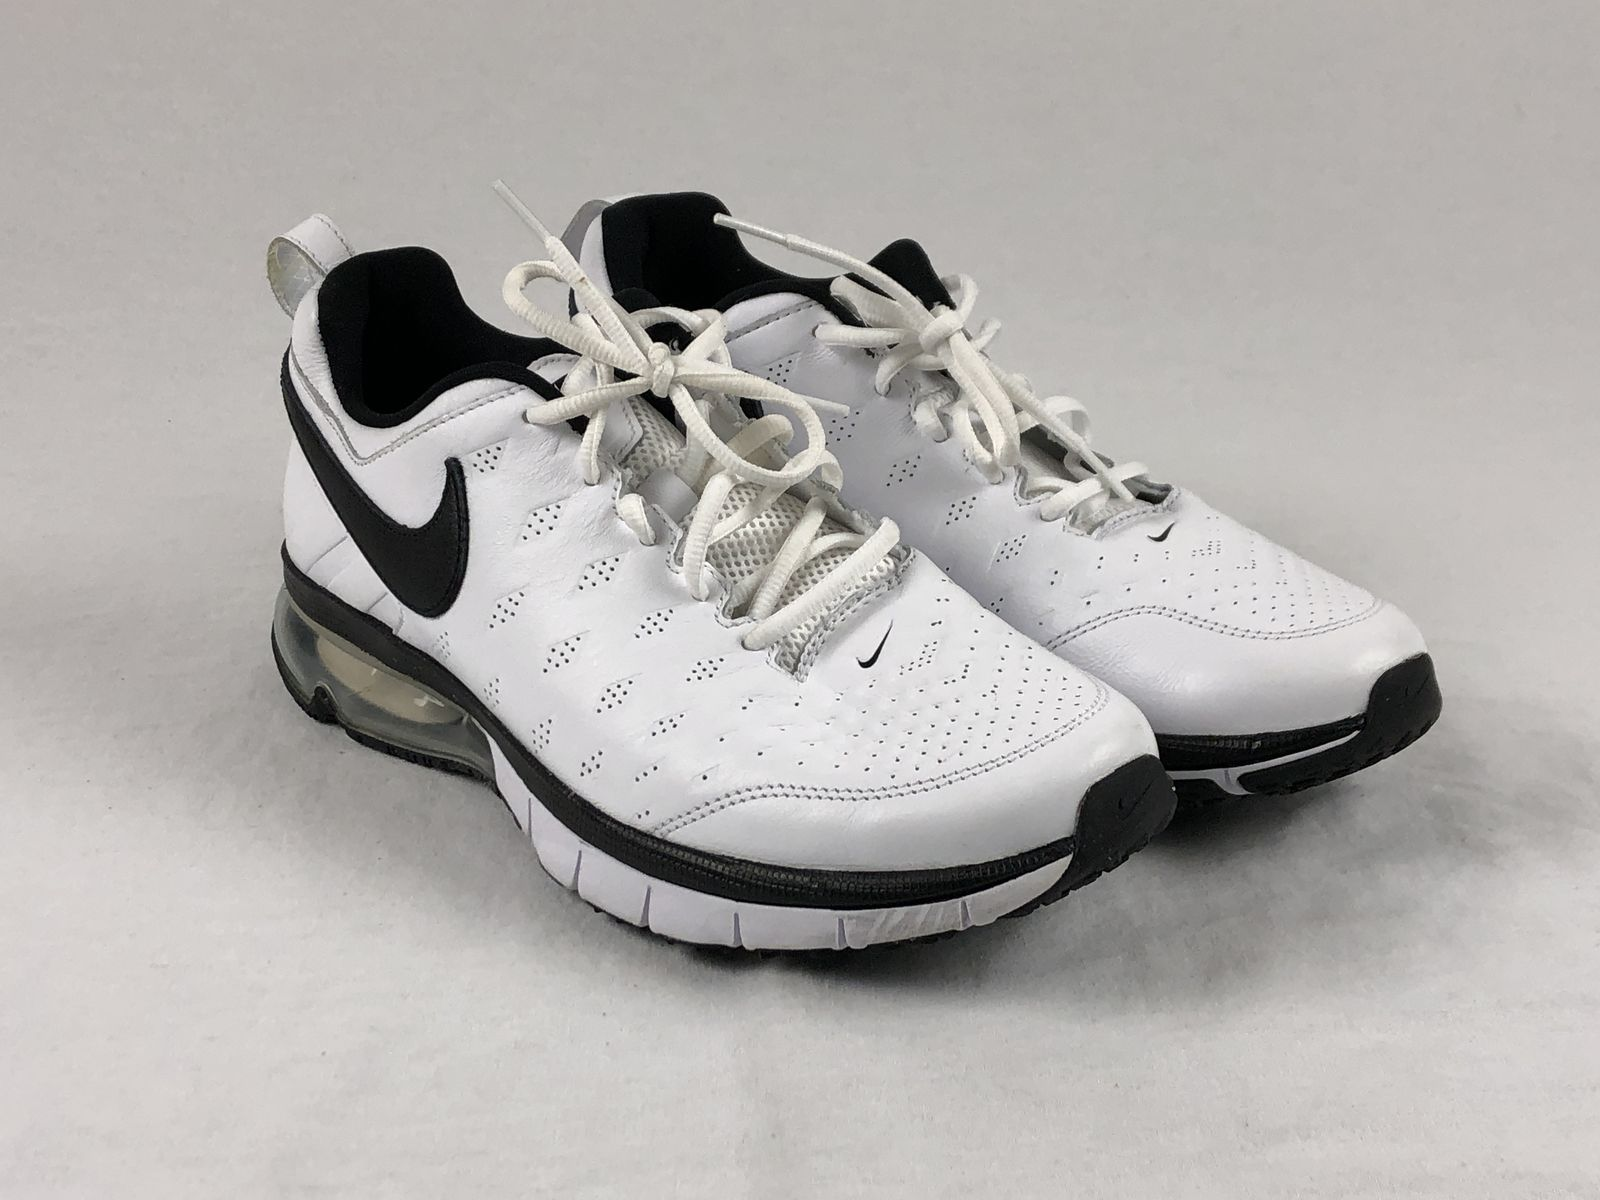 ff55b2c8074 Details about NEW Nike Air Max TR 180 - White Running